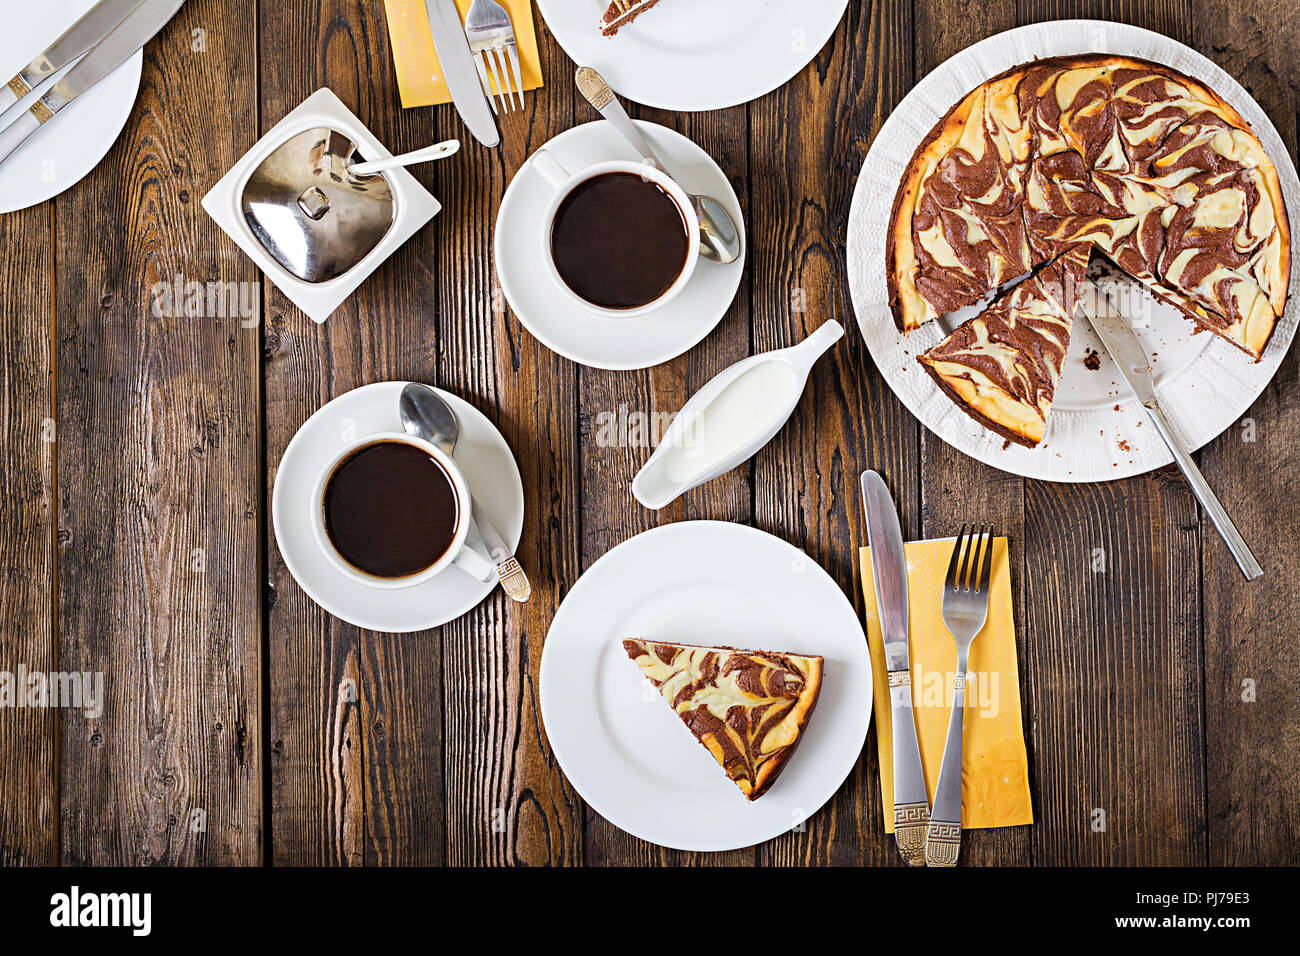 Chocolate cheesecake and coffee on wooden background. Cup coffee and cheesecake.Top view. Flat lay Stock Photo